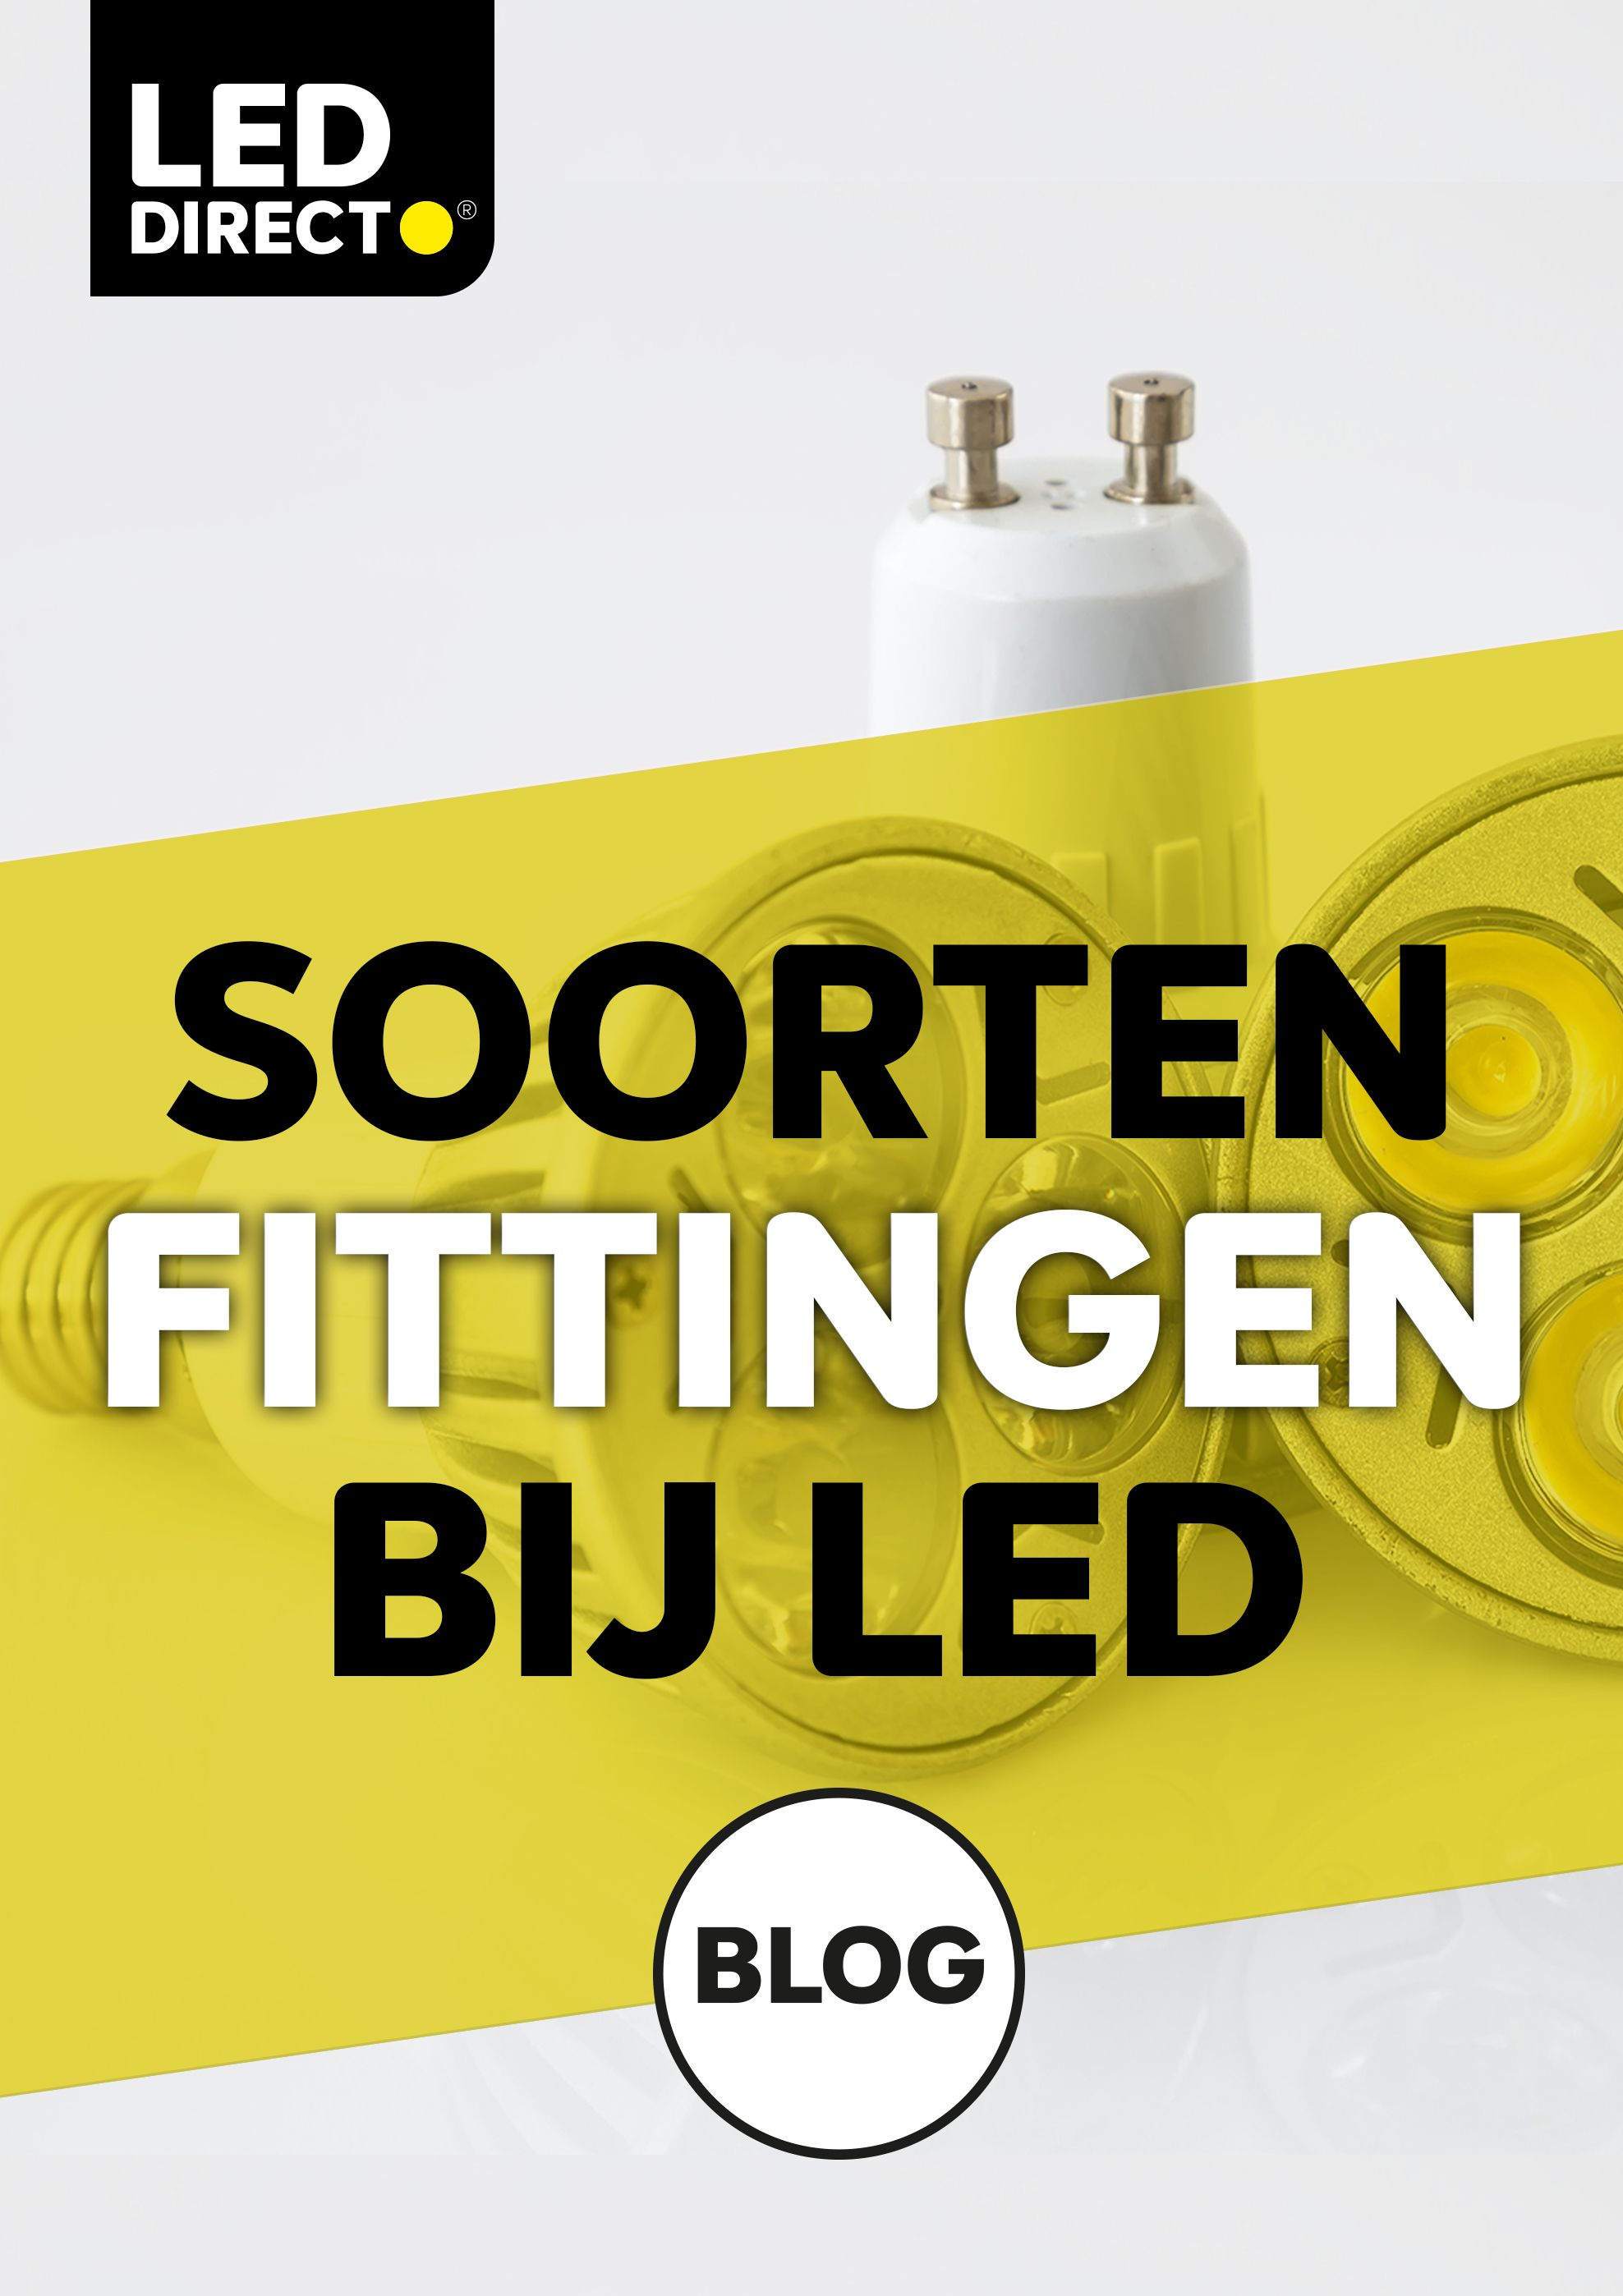 Soorten Fittingen Bij Led In 2020 Led Fitting Lampen